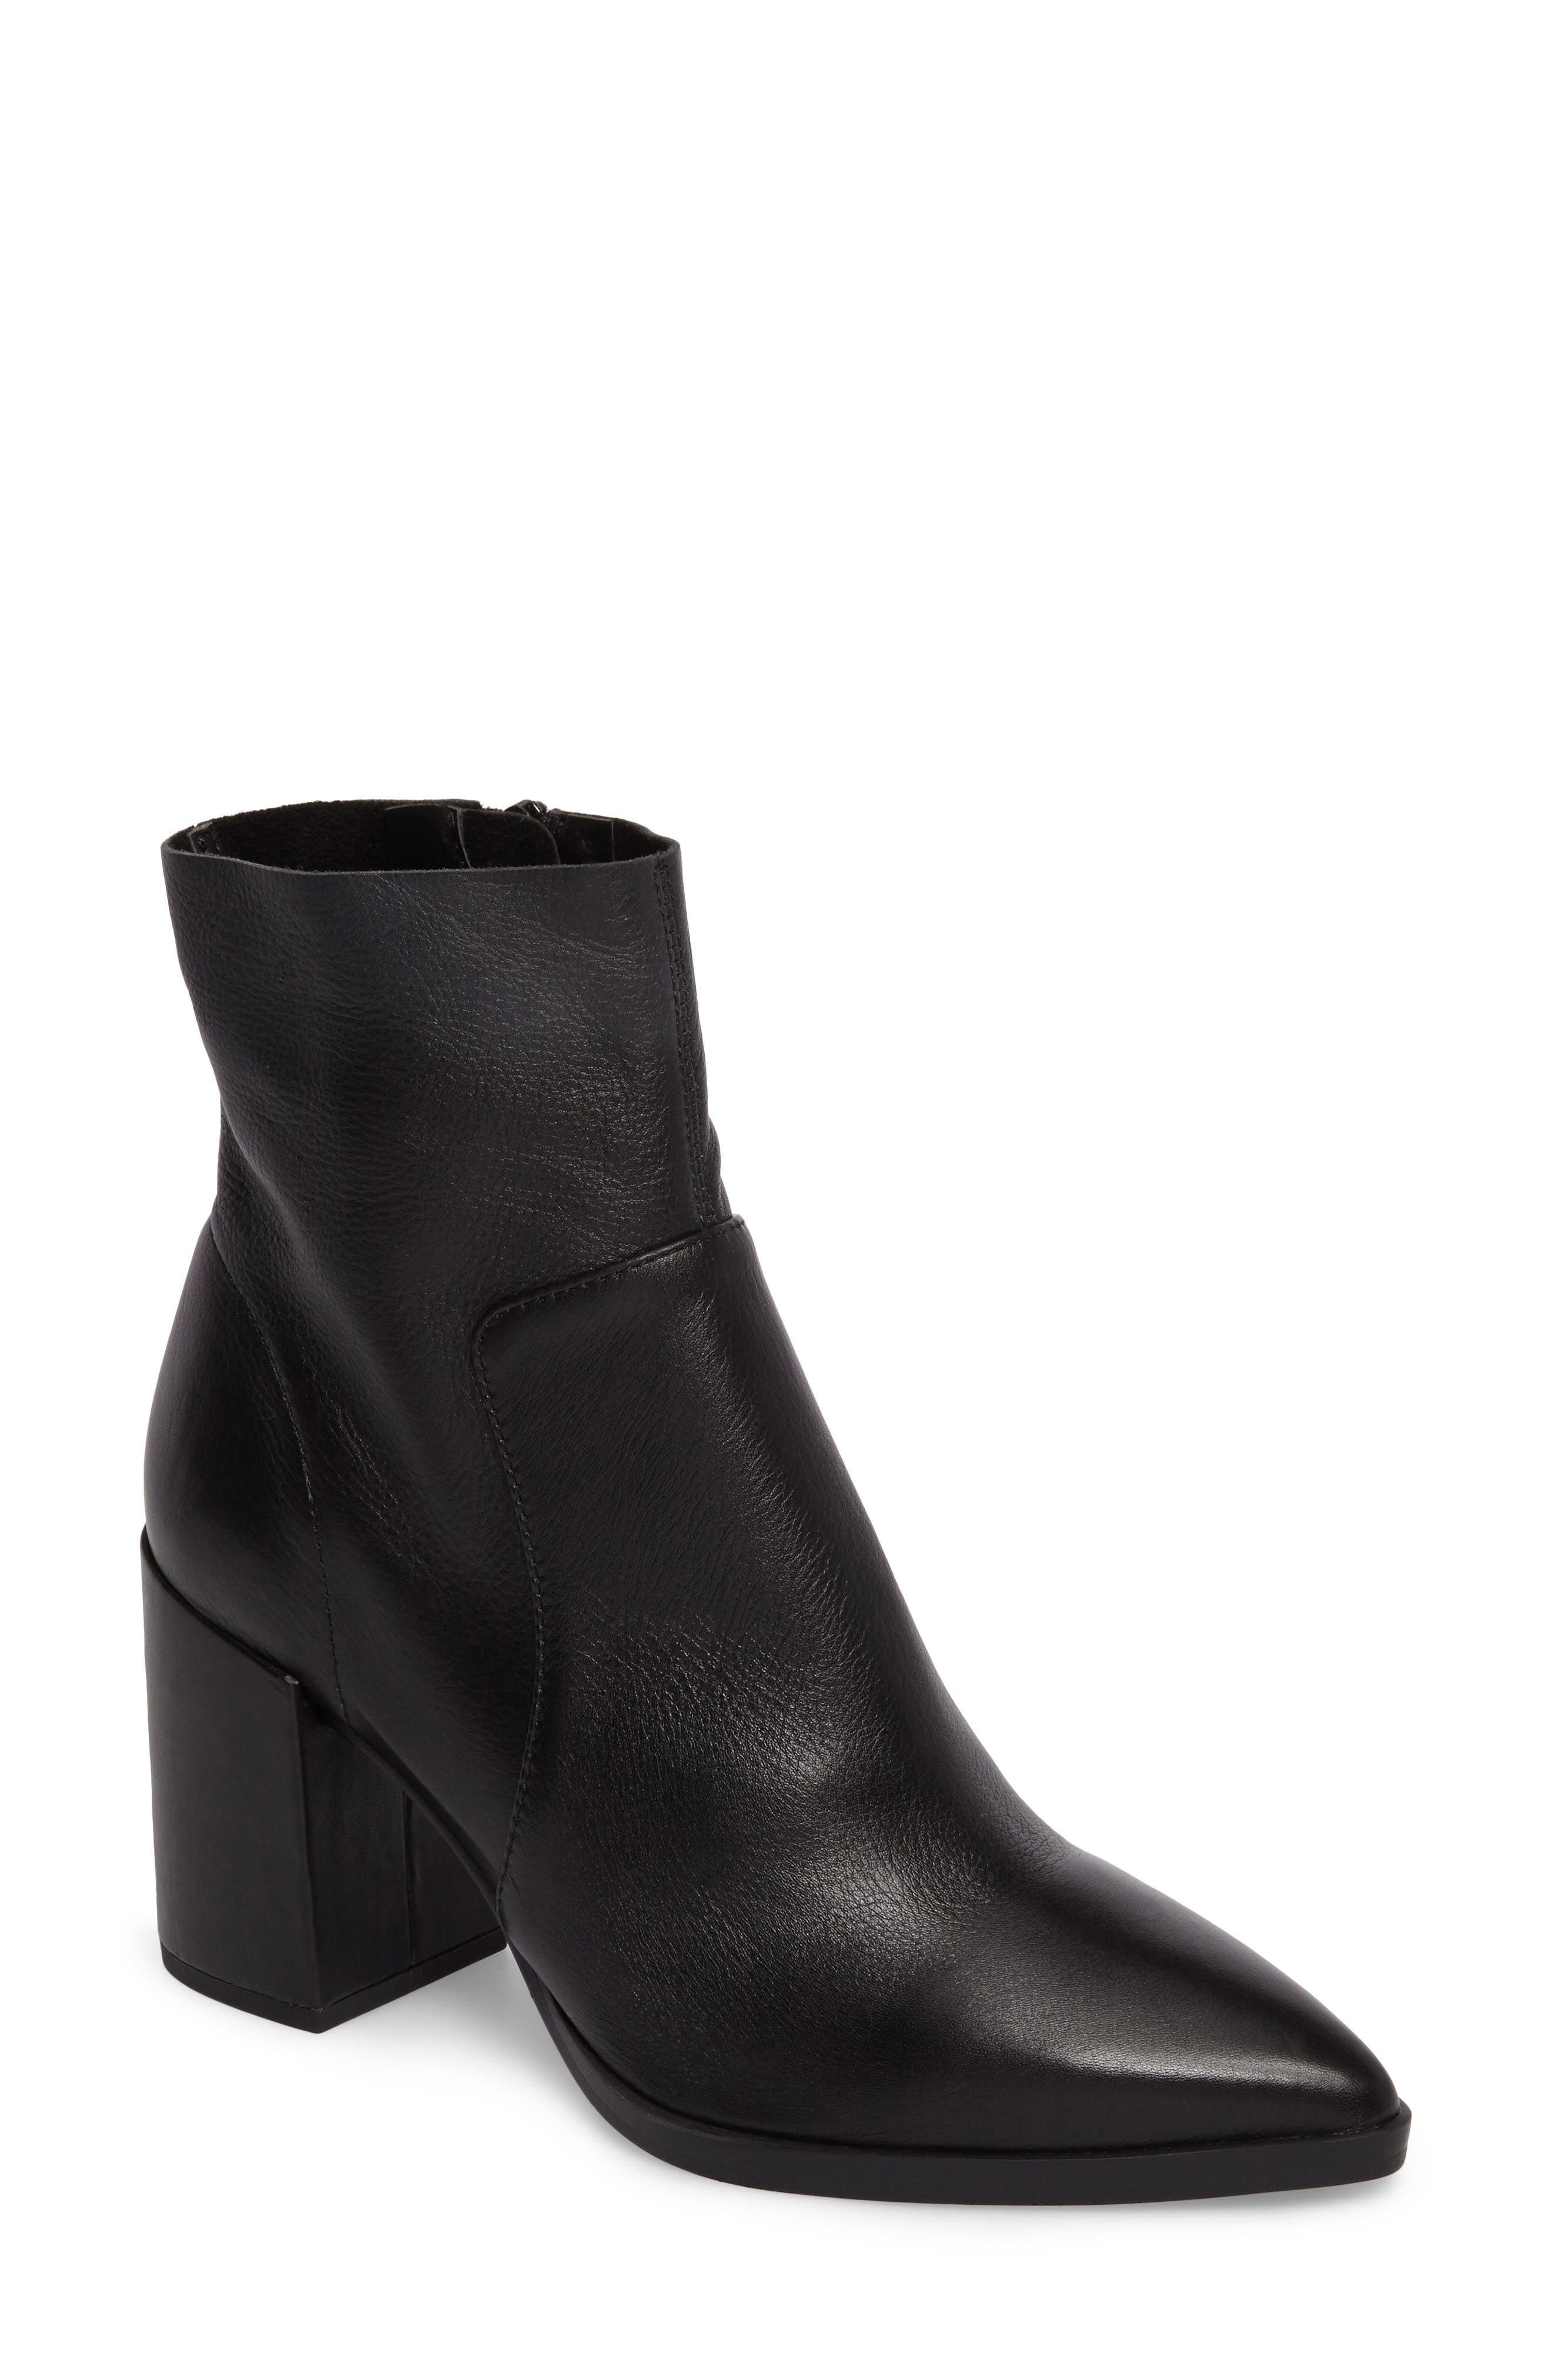 Brazen Pointy Toe Bootie,                             Main thumbnail 1, color,                             BLACK LEATHER